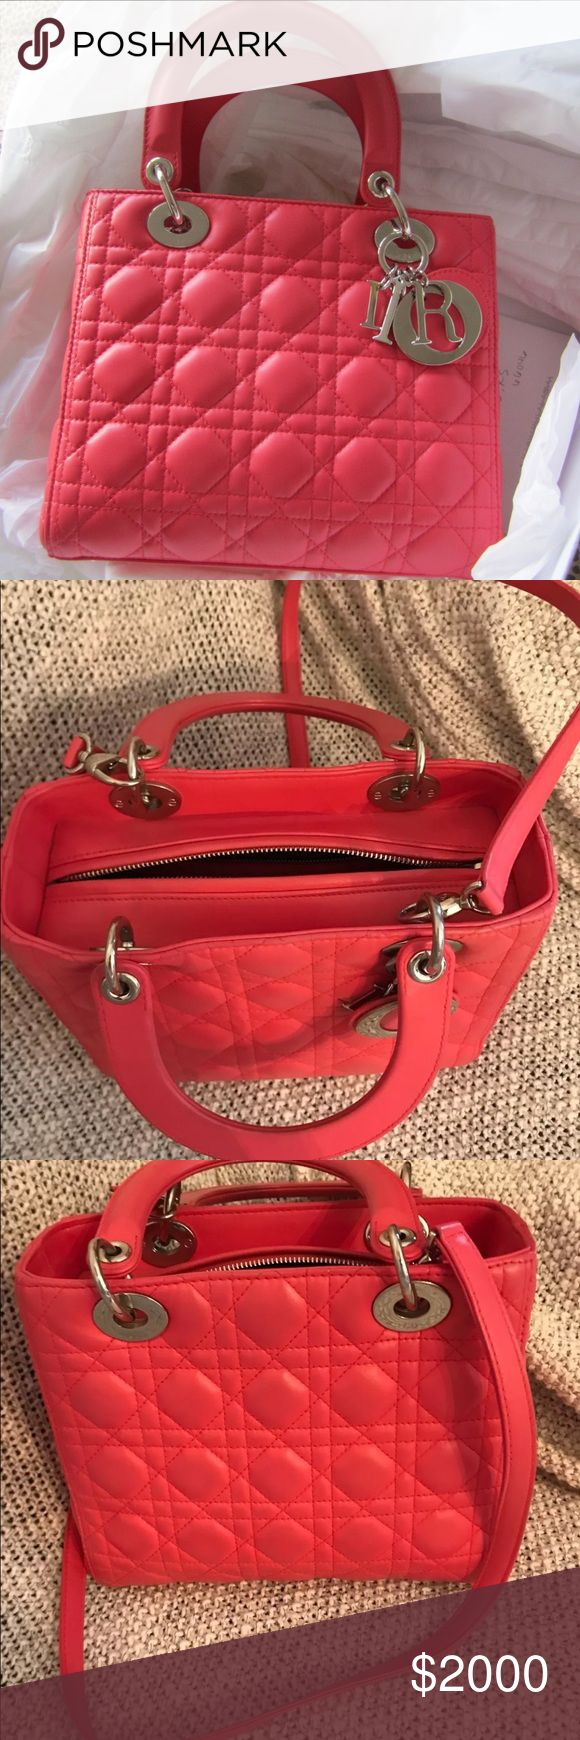 Lady Dior Lambskin Bag Up for sale authentic Christian Dior Lady Dior bag in Coral pink color. This bag has been used gently for less than 10 times since purchased. Retail: $4,500. No trades ever Dior Bags